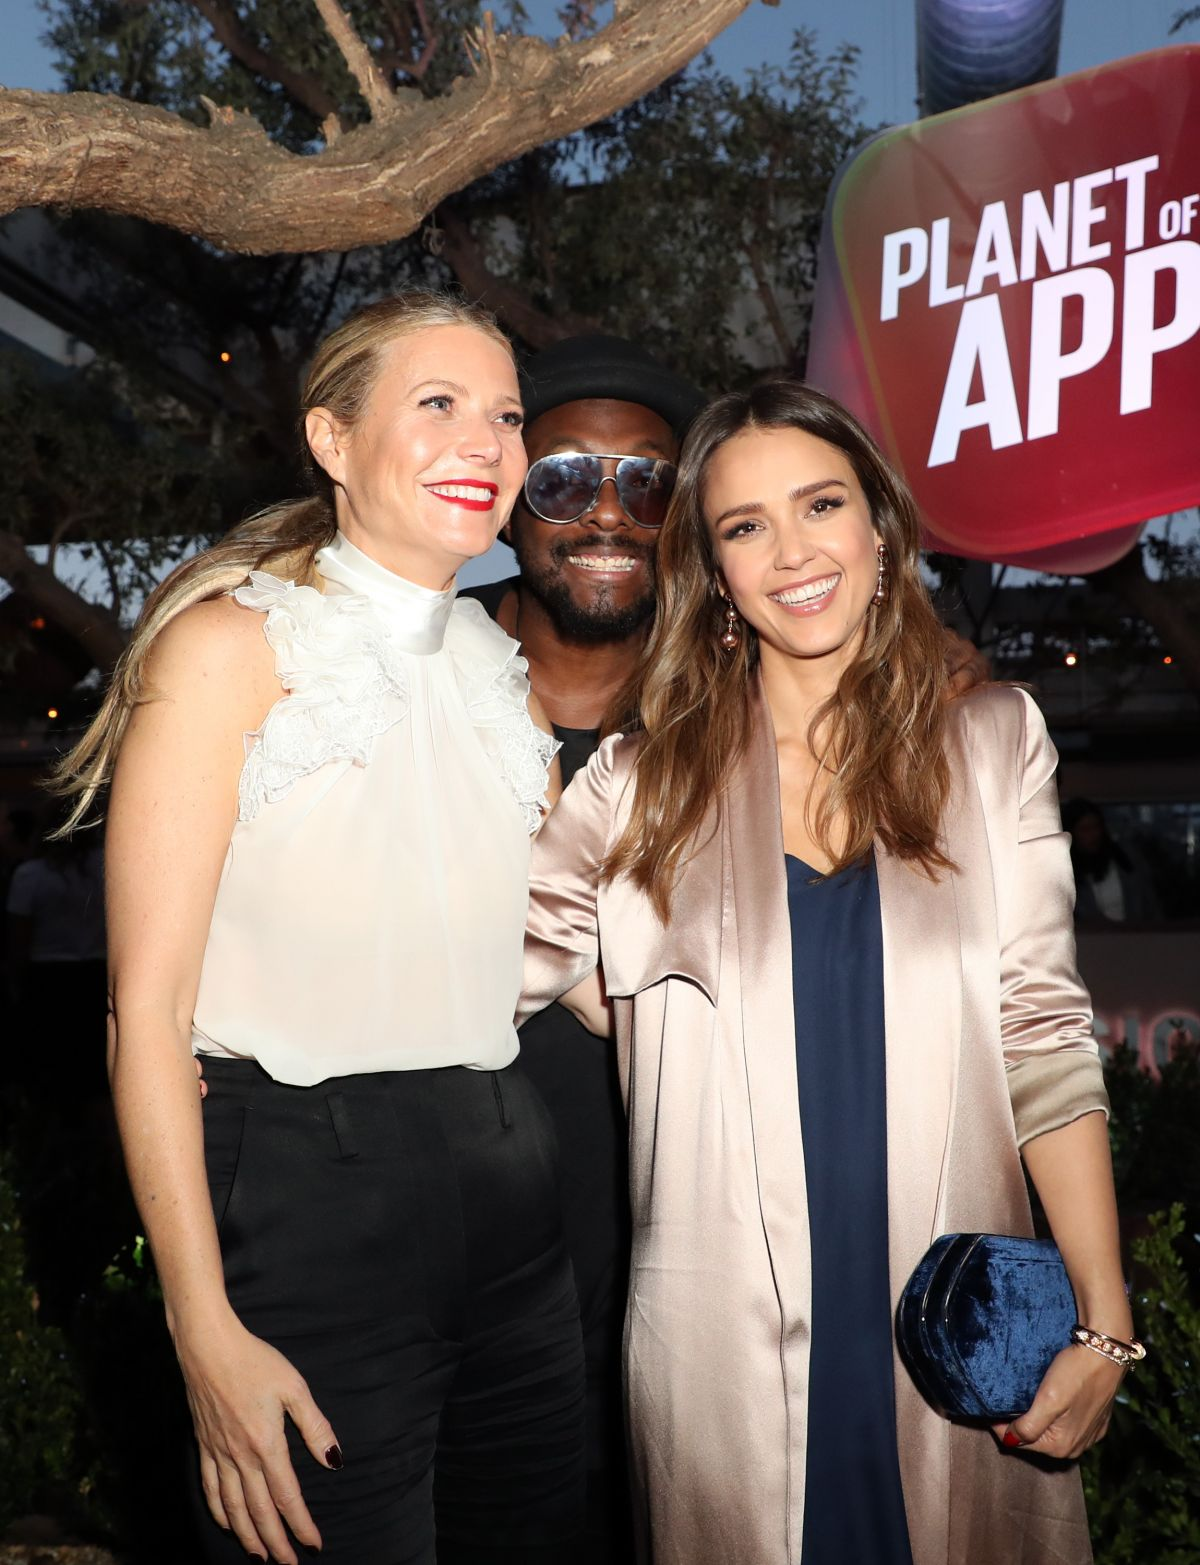 http://www.hawtcelebs.com/wp-content/uploads/2017/06/jessica-alba-at-planet-of-the-apps-season-1-premiere-in-los-angeles-06-12-2017_2.jpg